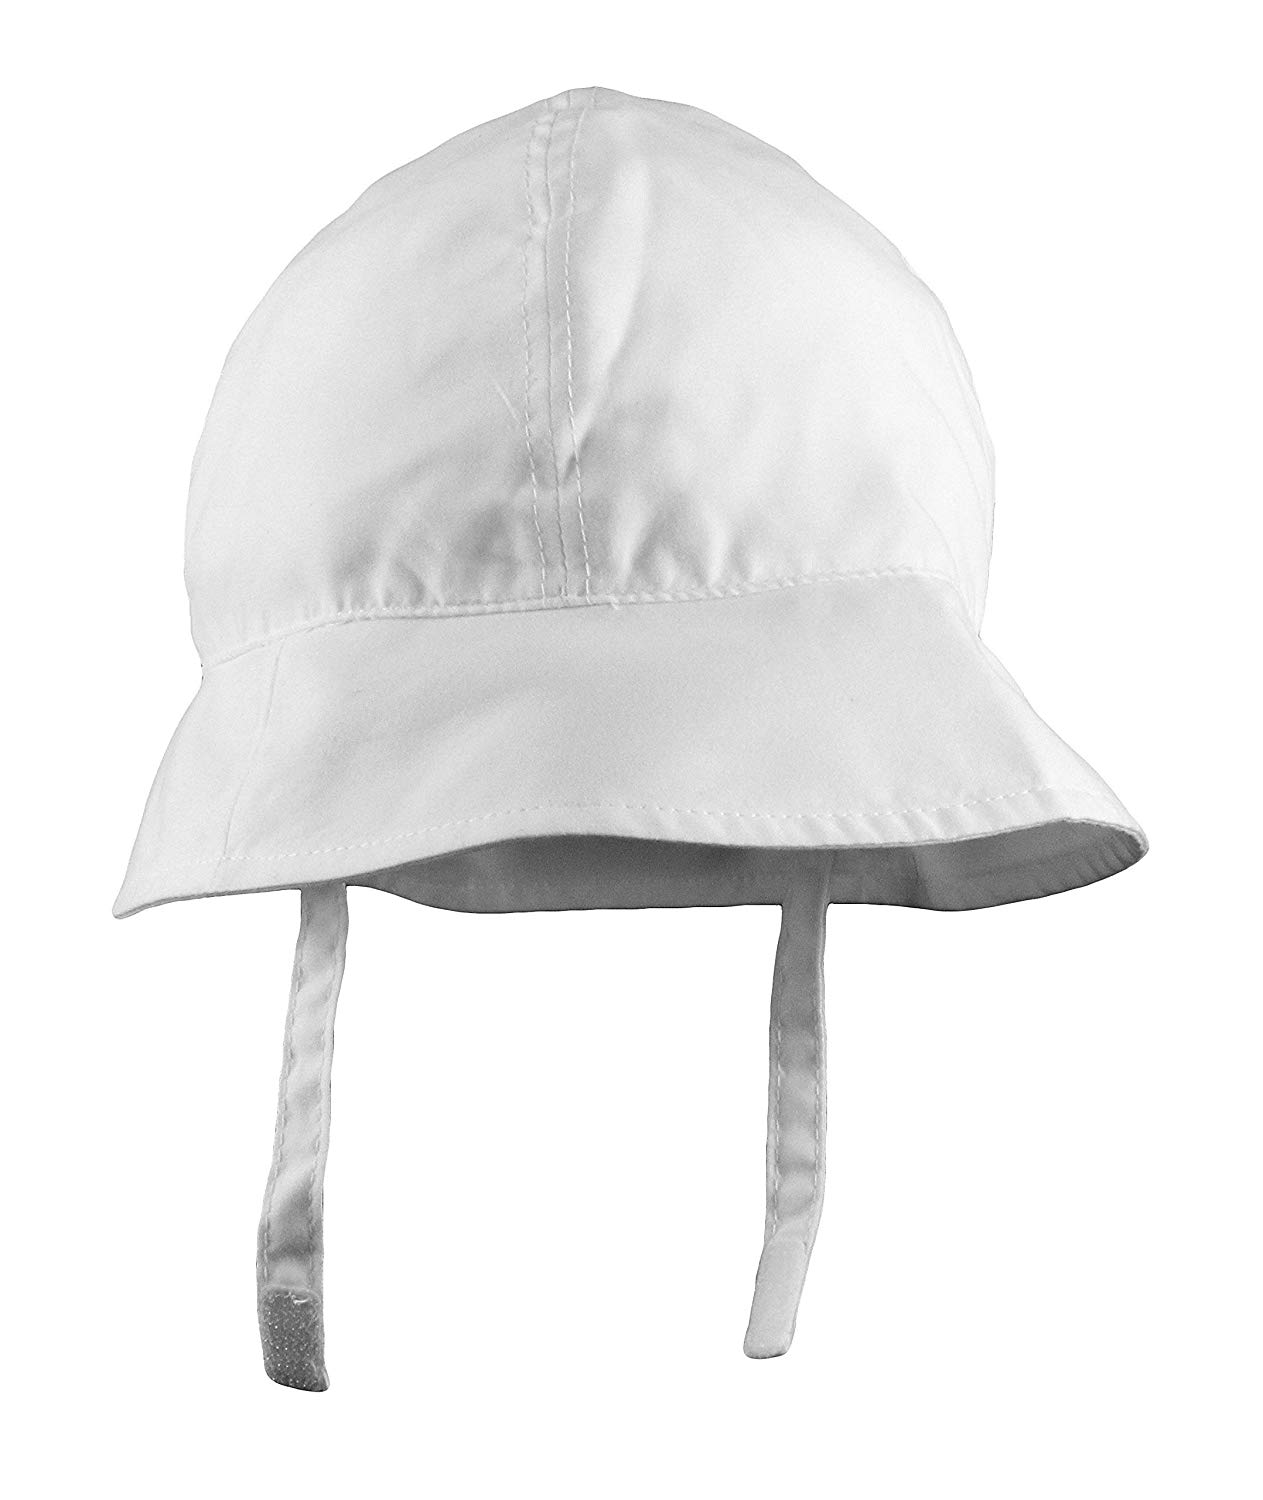 Get Quotations · Baby Classic White Bucket Hat with Chin Strap - UV 50+ 03955d264051